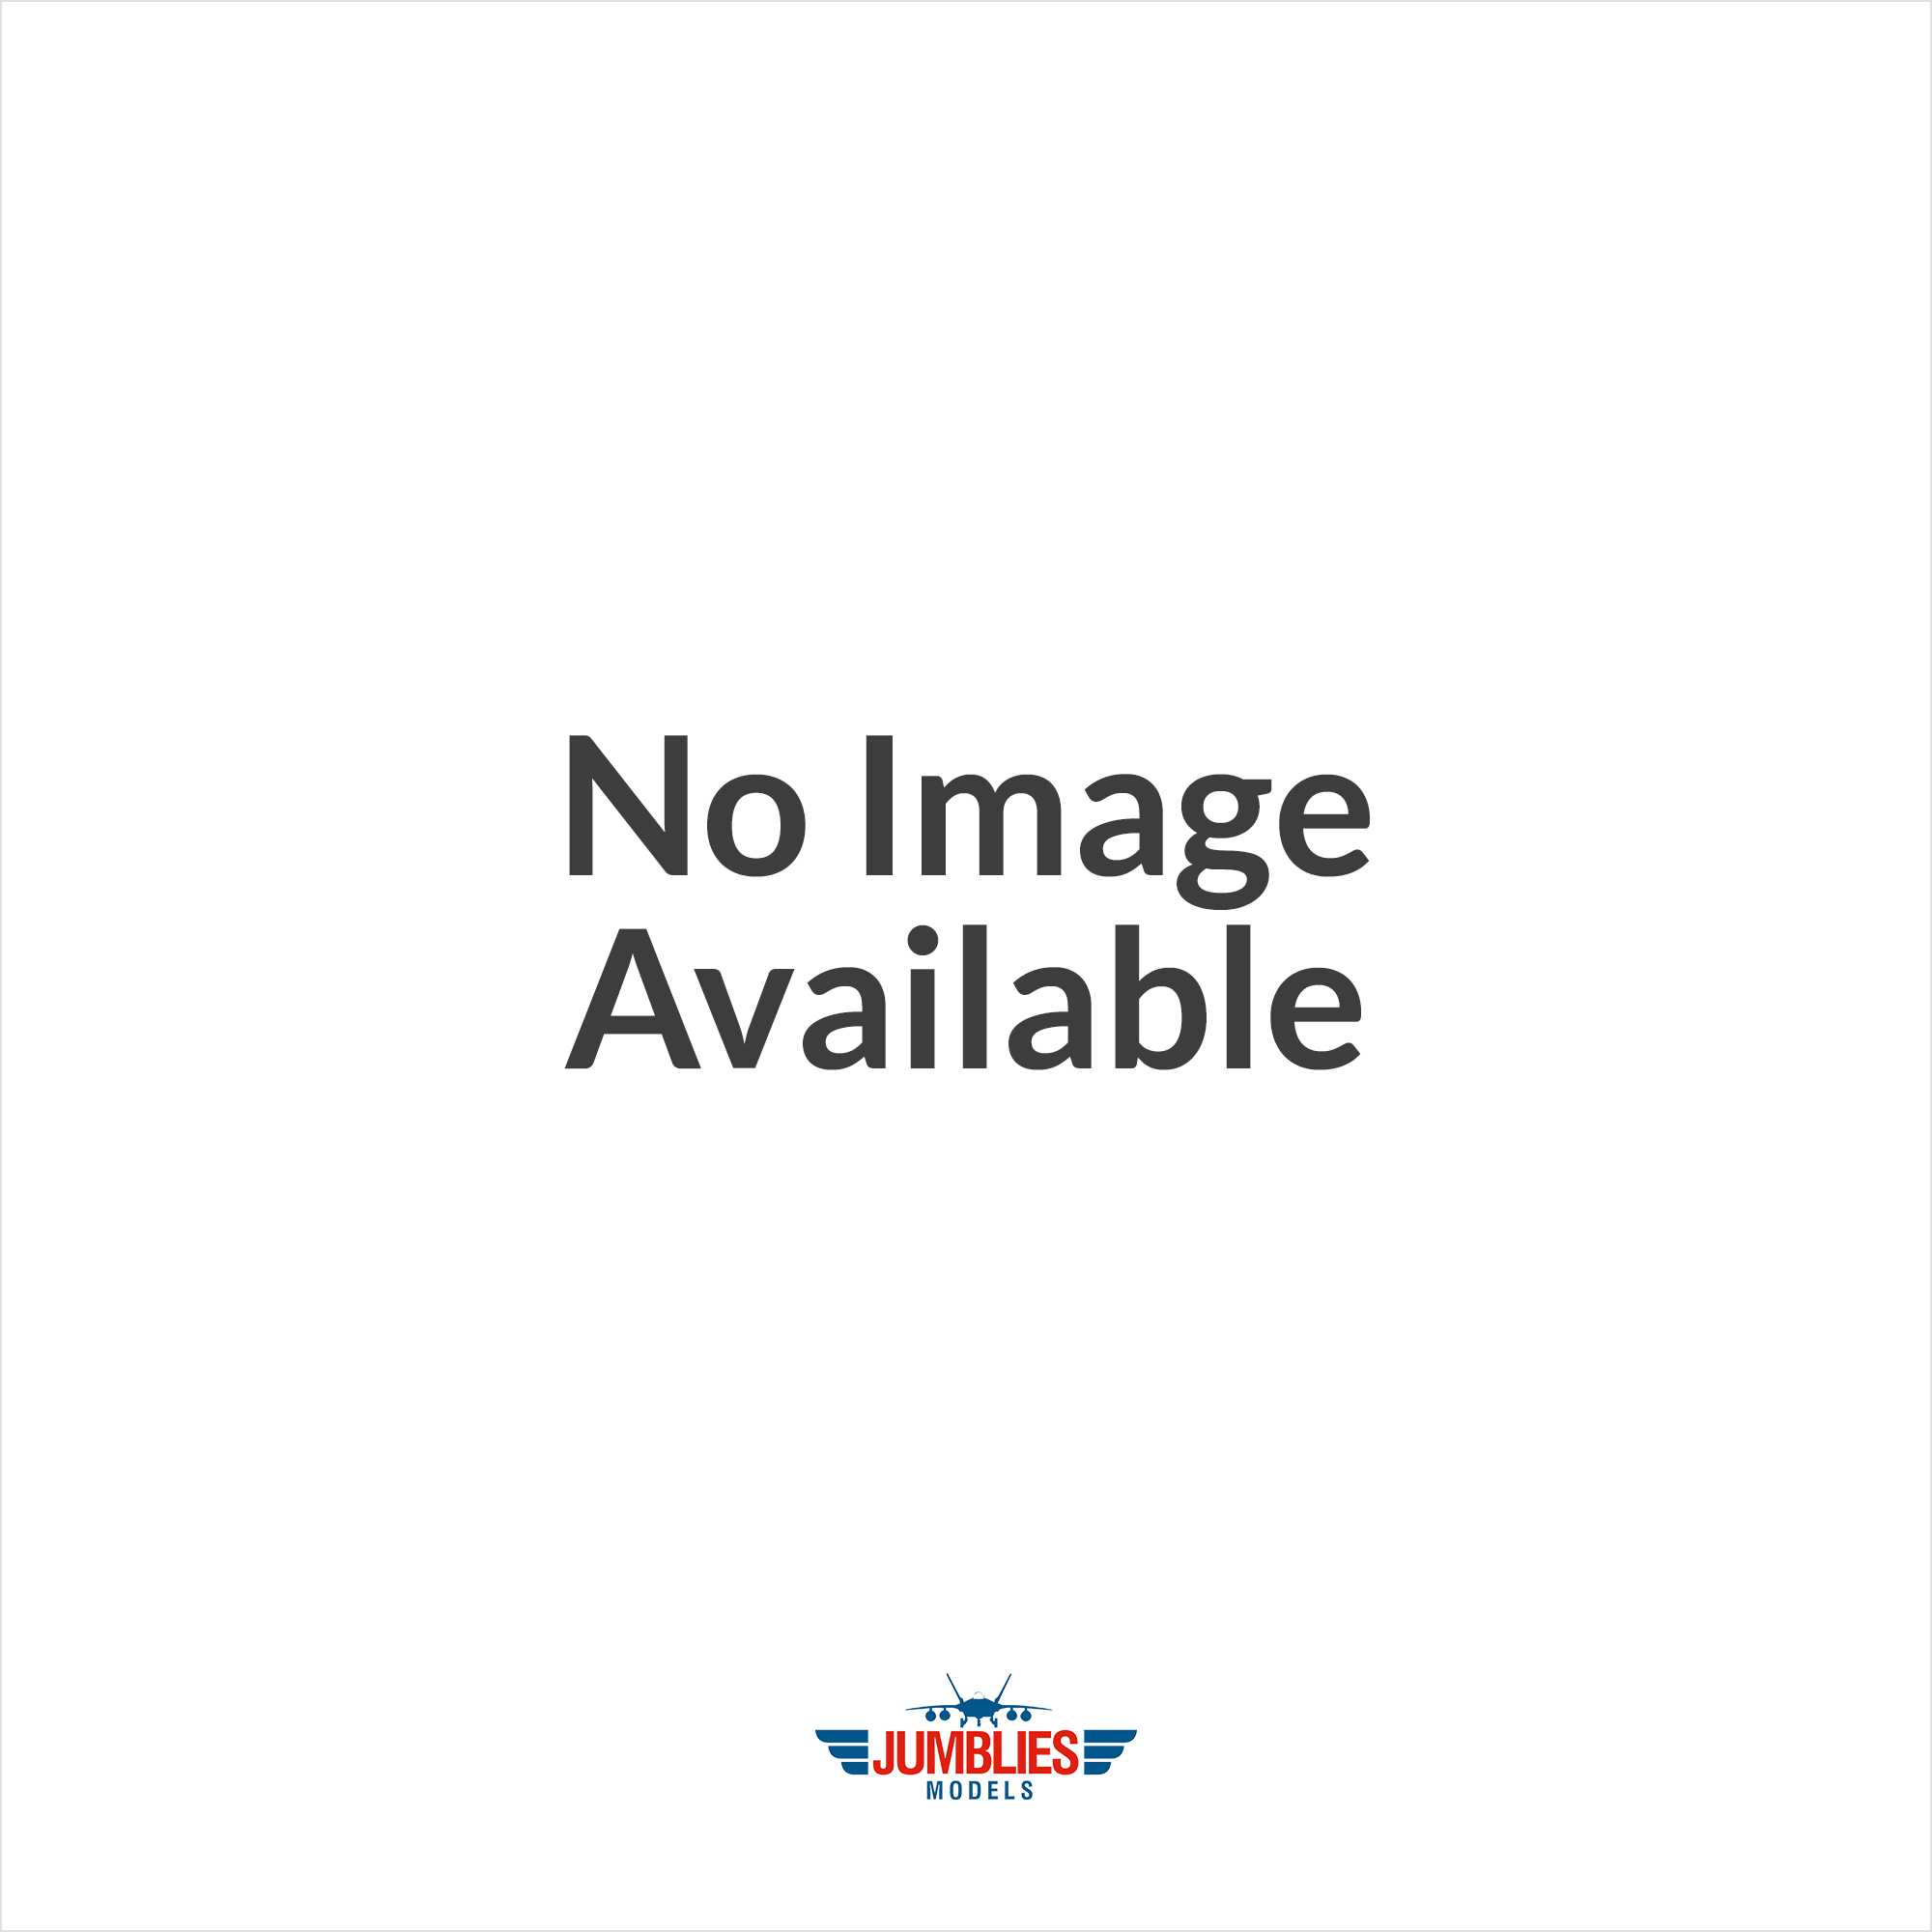 Revell 1:72 Junkers Ju52/3m Civil Aircraft Model Kit